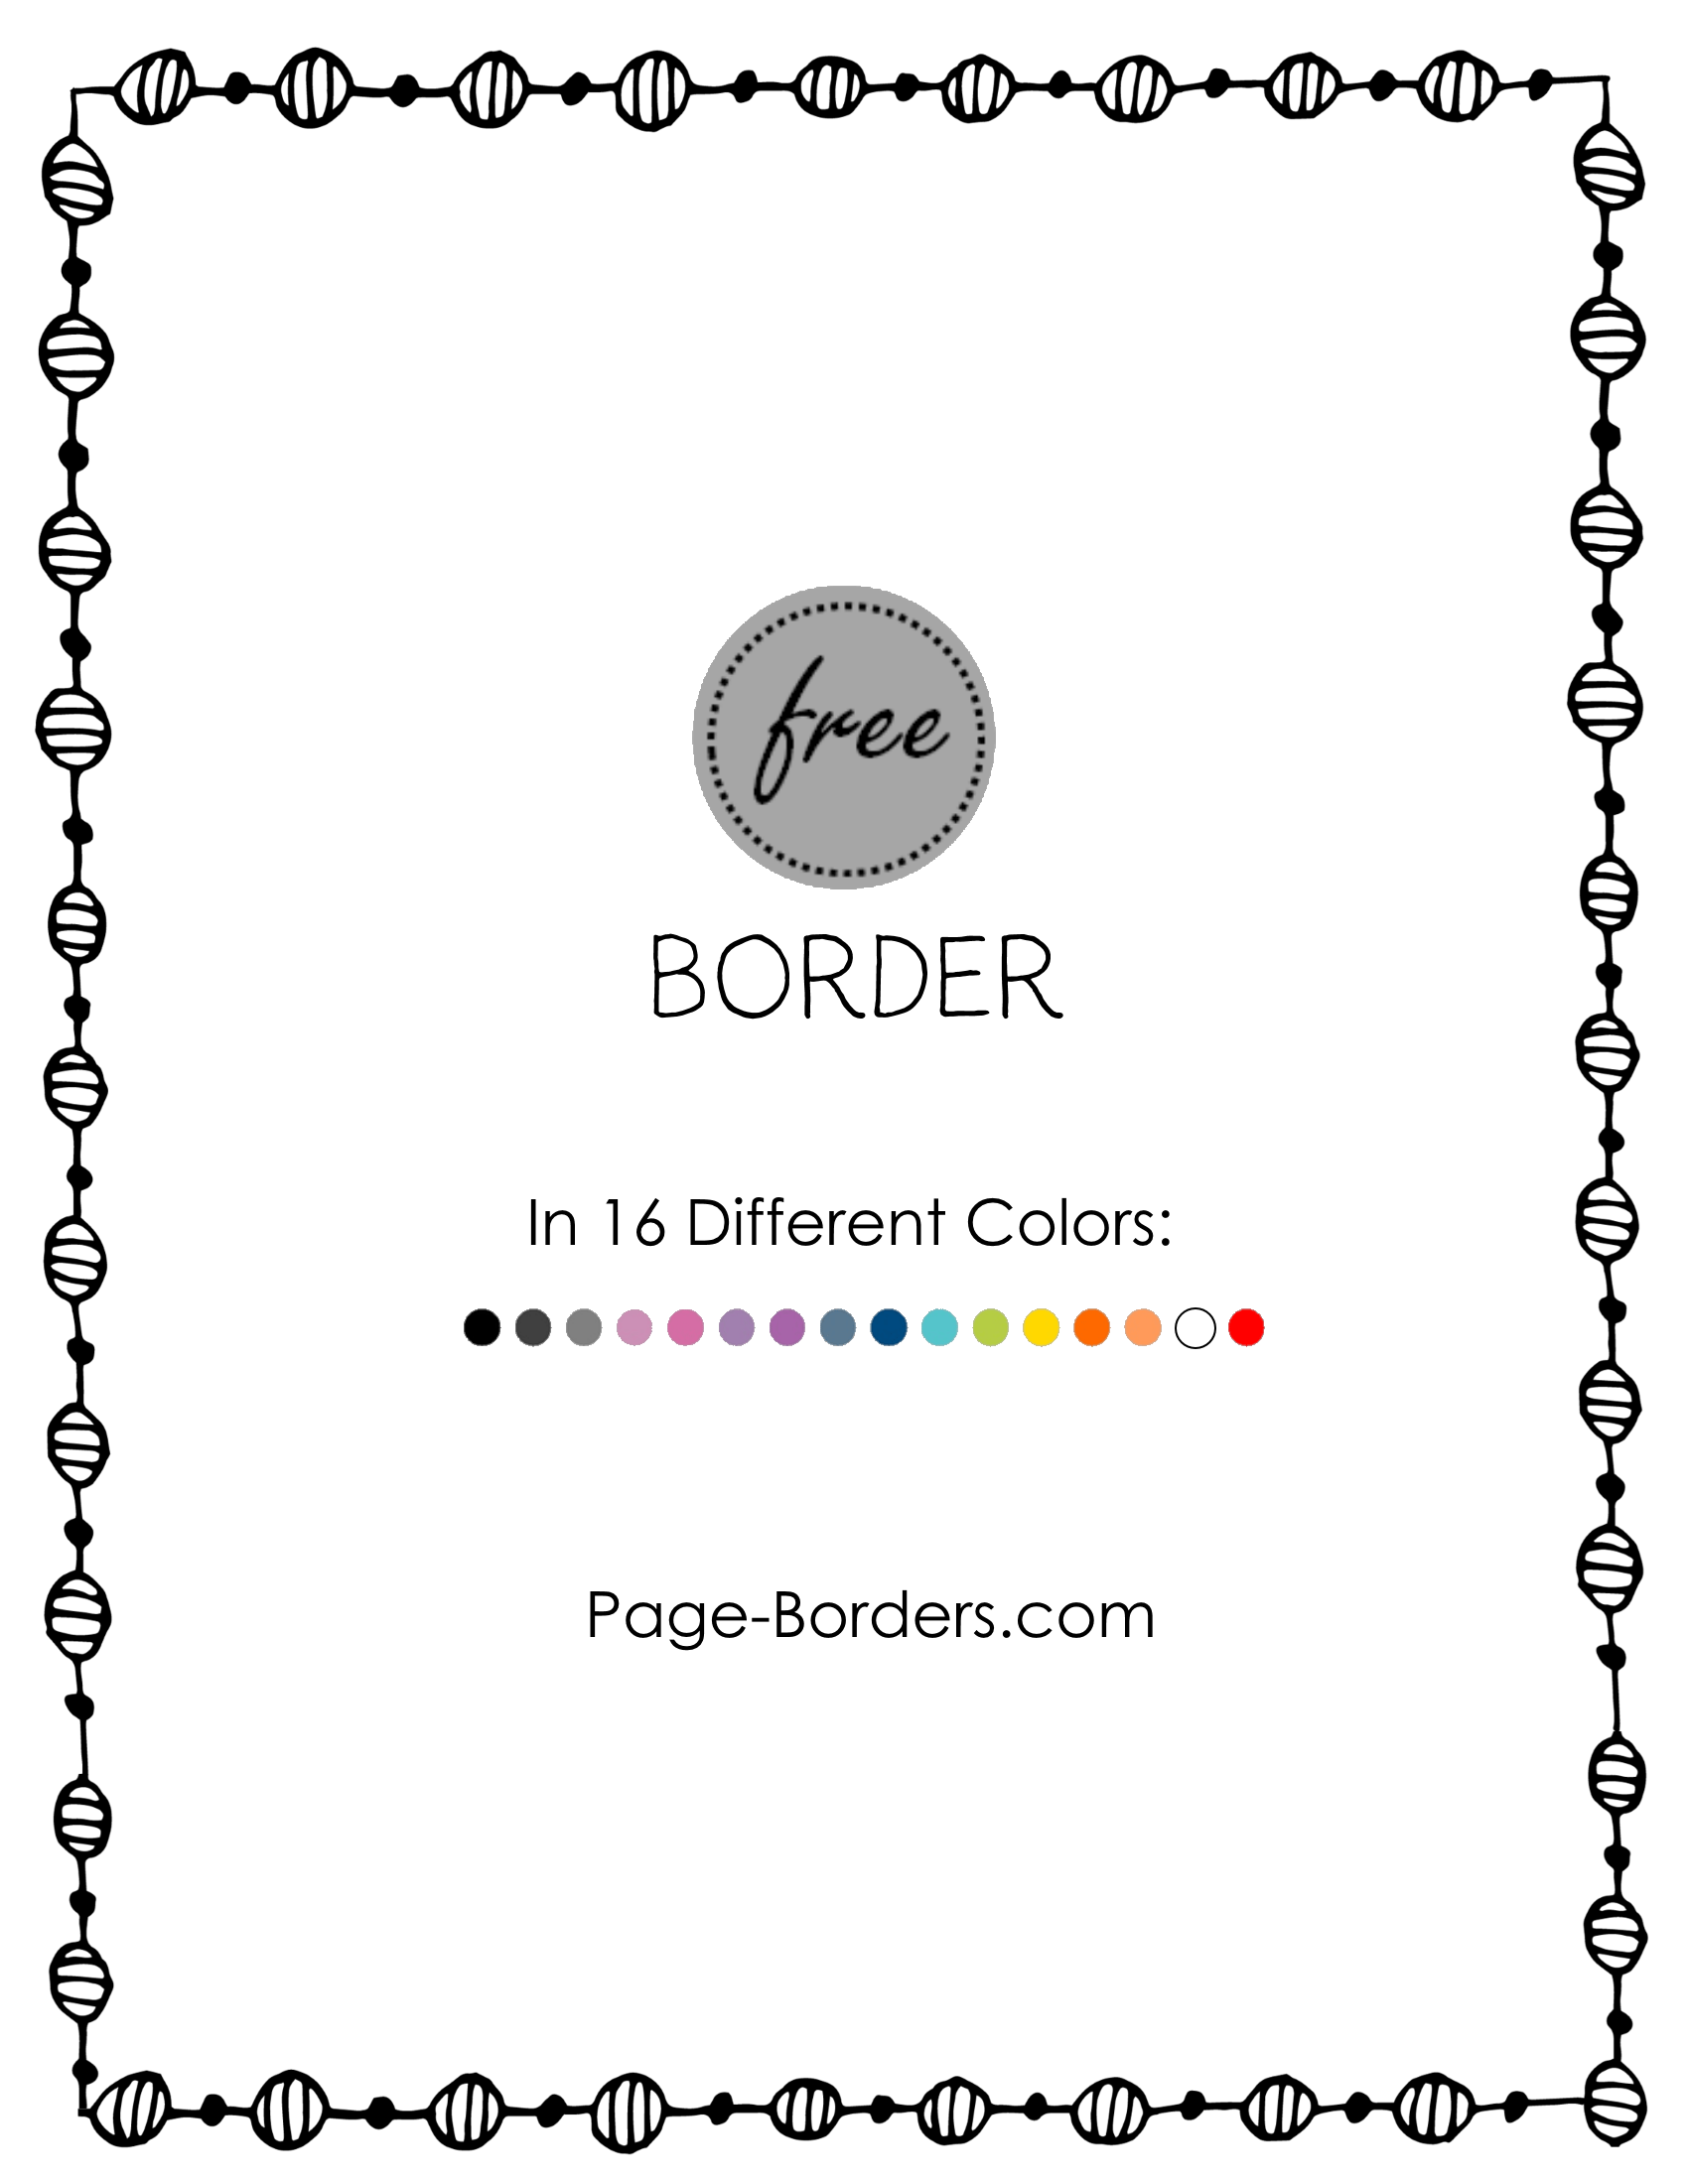 Free border doodle.